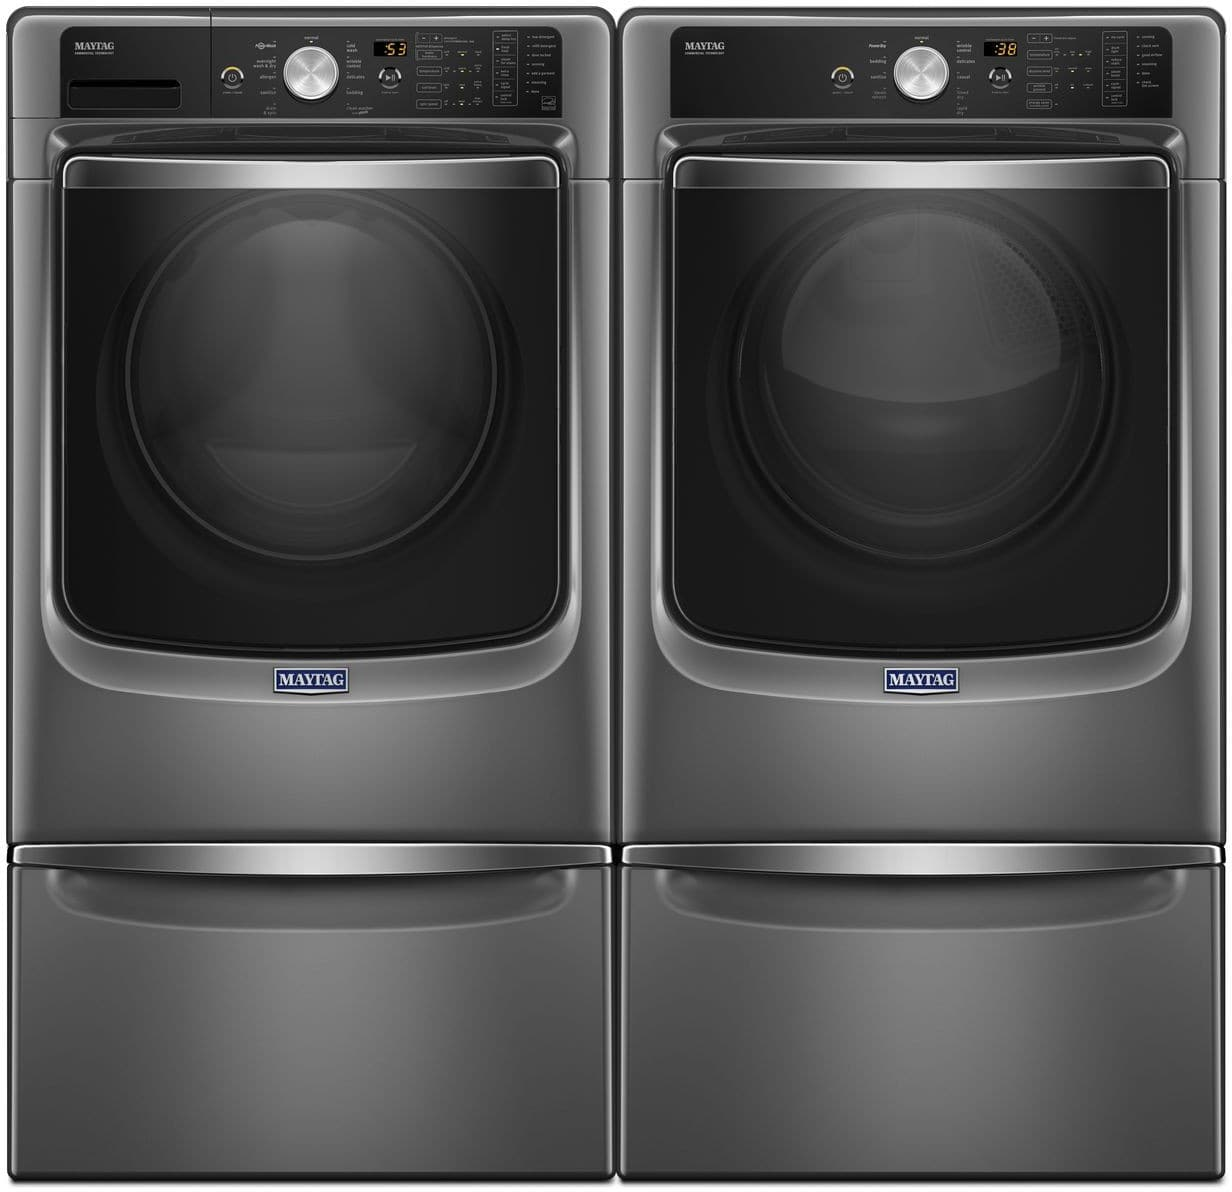 and pedestal off sale pedestals find dryer epic up sure z they at for washer pretty too to whirlpool work i pair more maytag but